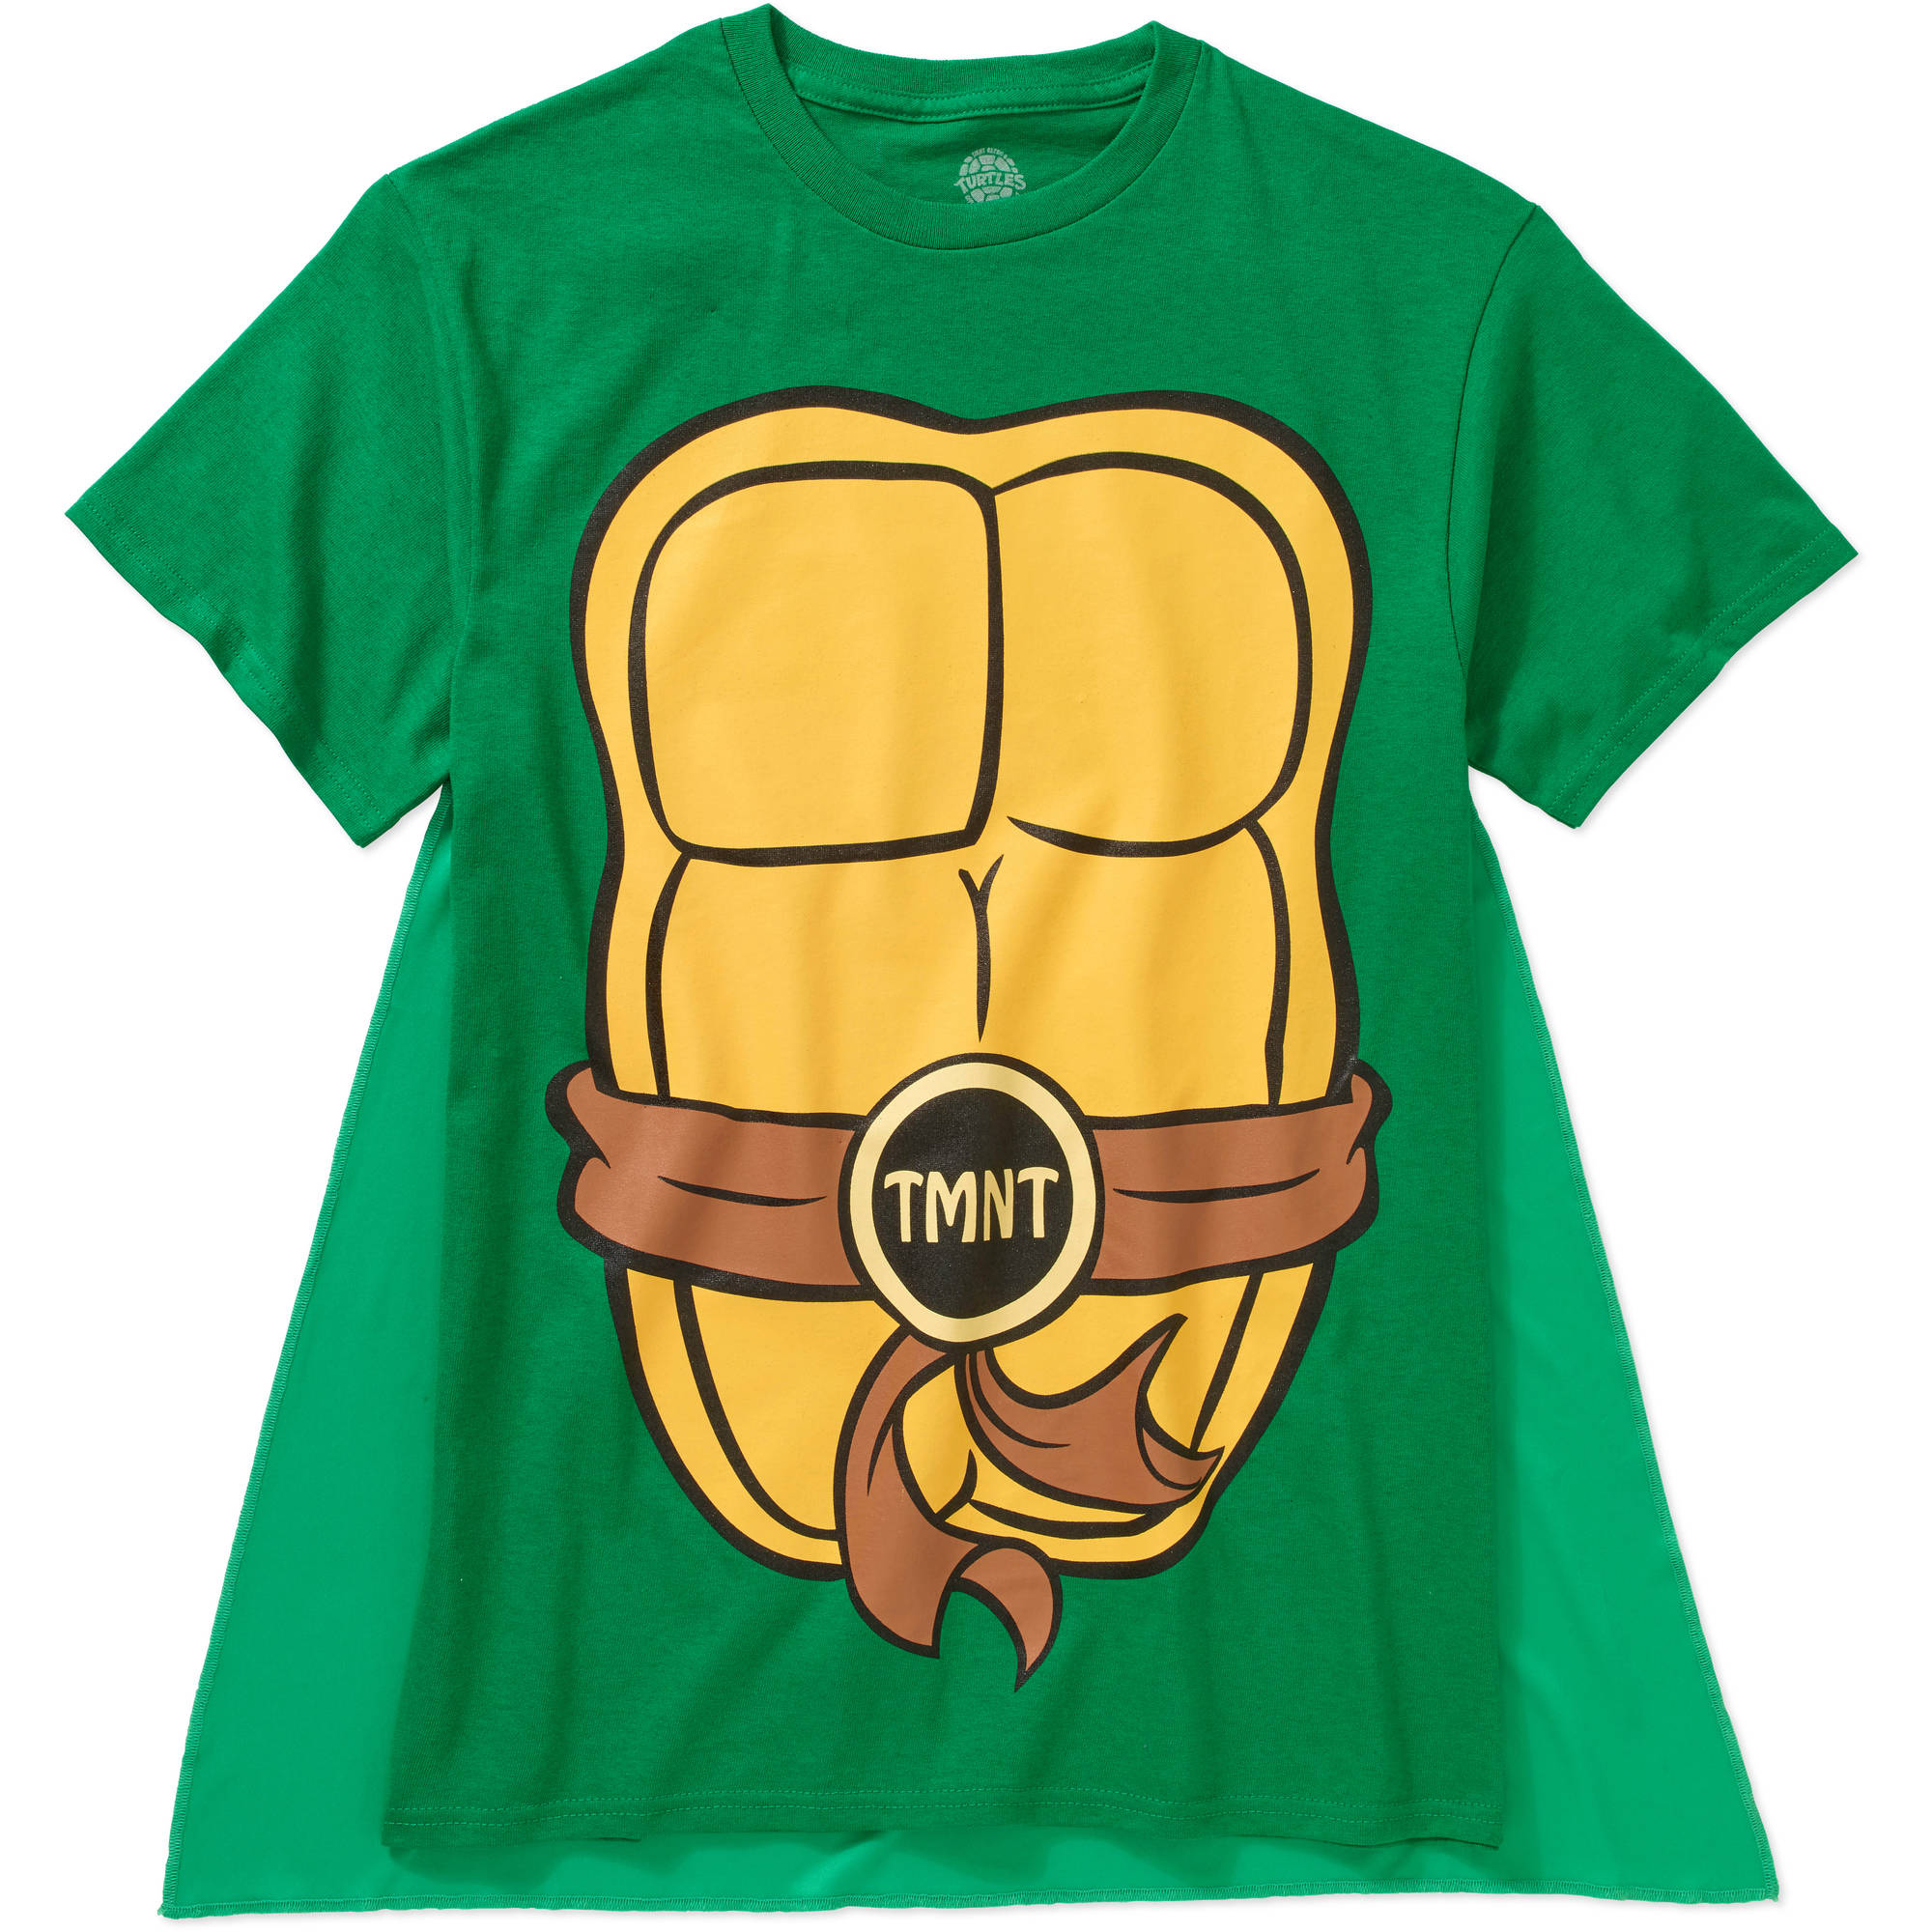 Teenage Mutant Ninja Turtles Big Men's Cape Tee, 2XL